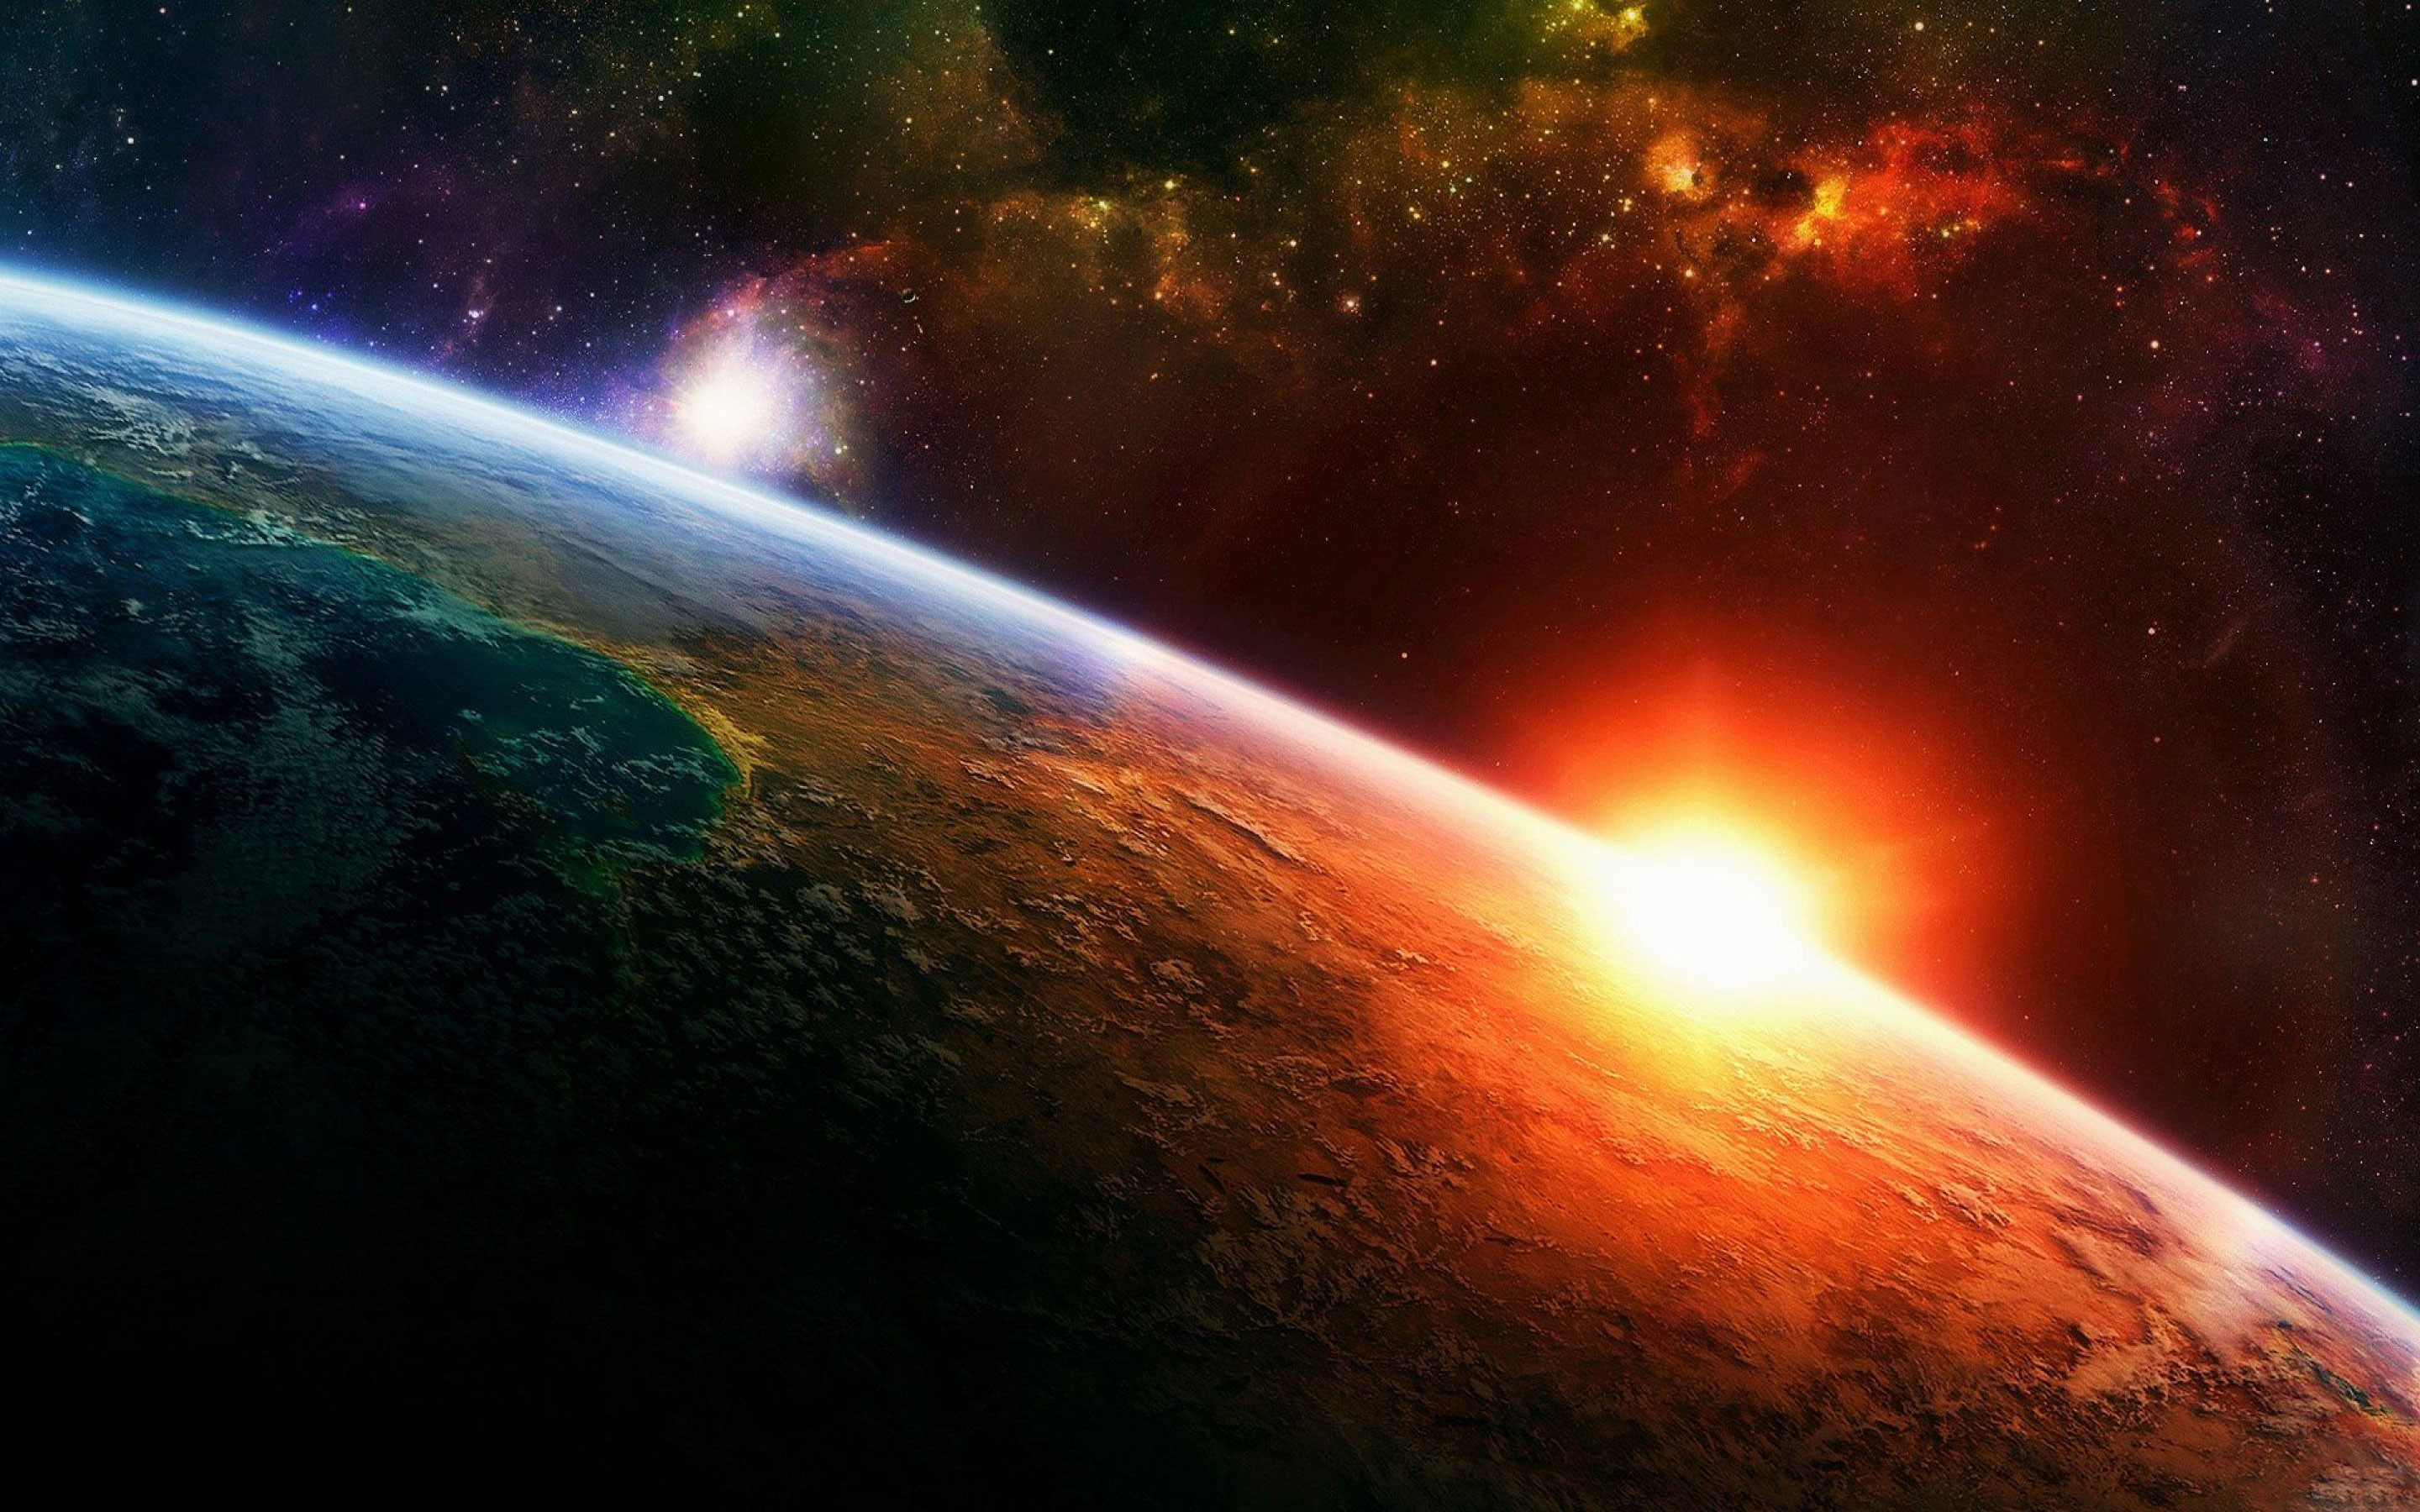 Super HD Space Wallpapers